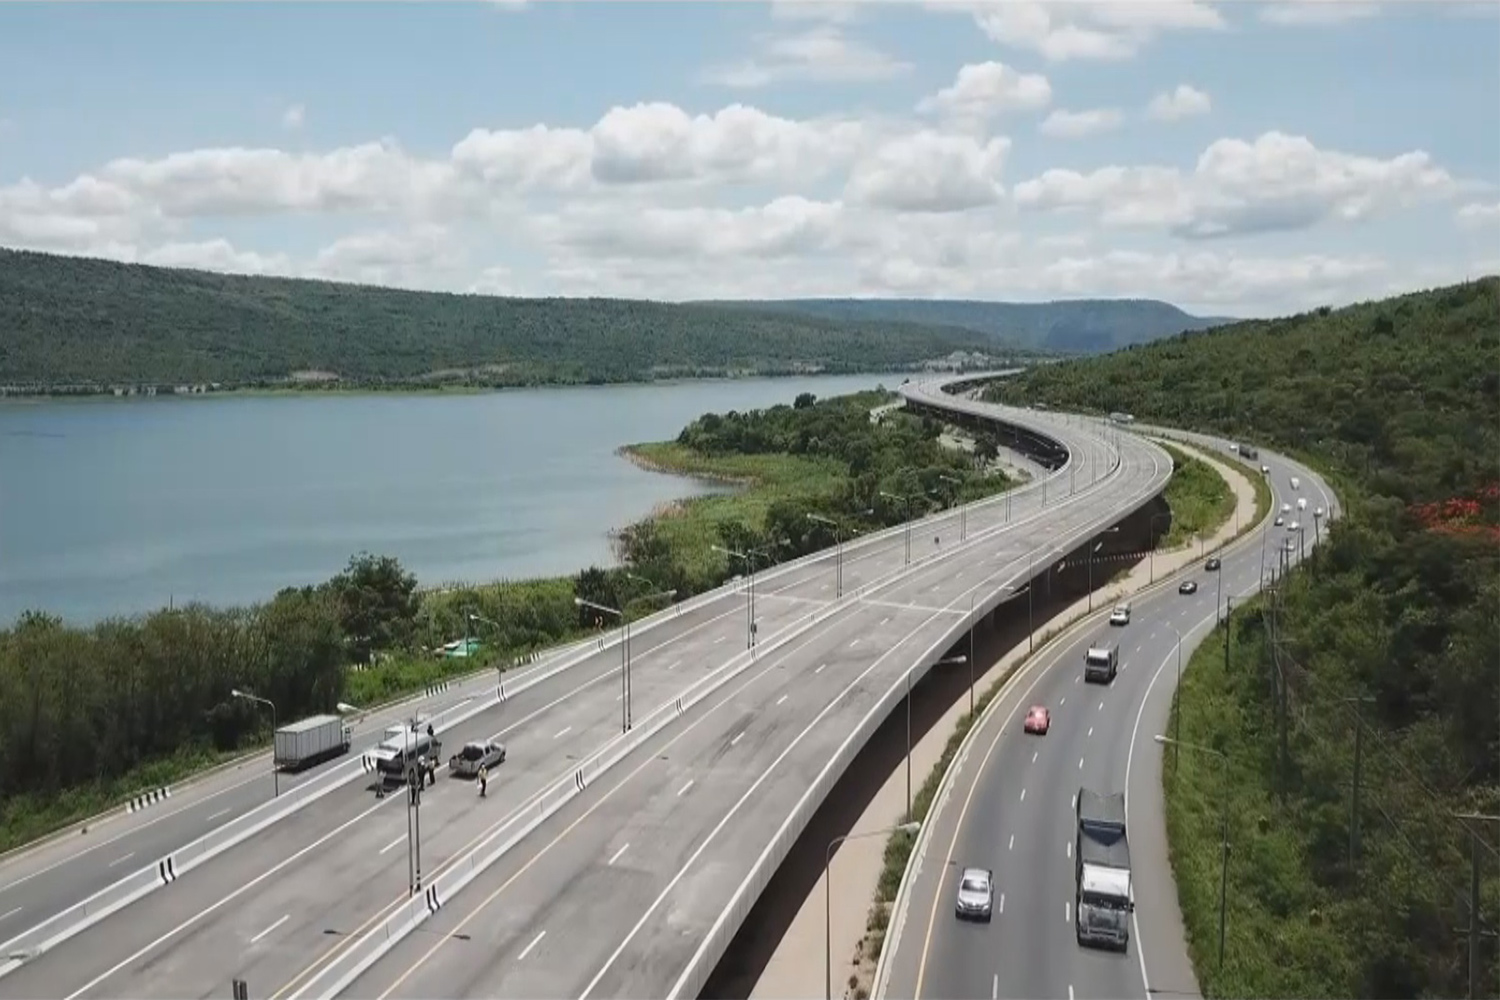 A scenic section of the new motorway connecting Bangkok with Nakhon Ratchasima runs along Lam Thakong reservoir in the northeastern province. (Photo by Prasit Tangprasert)